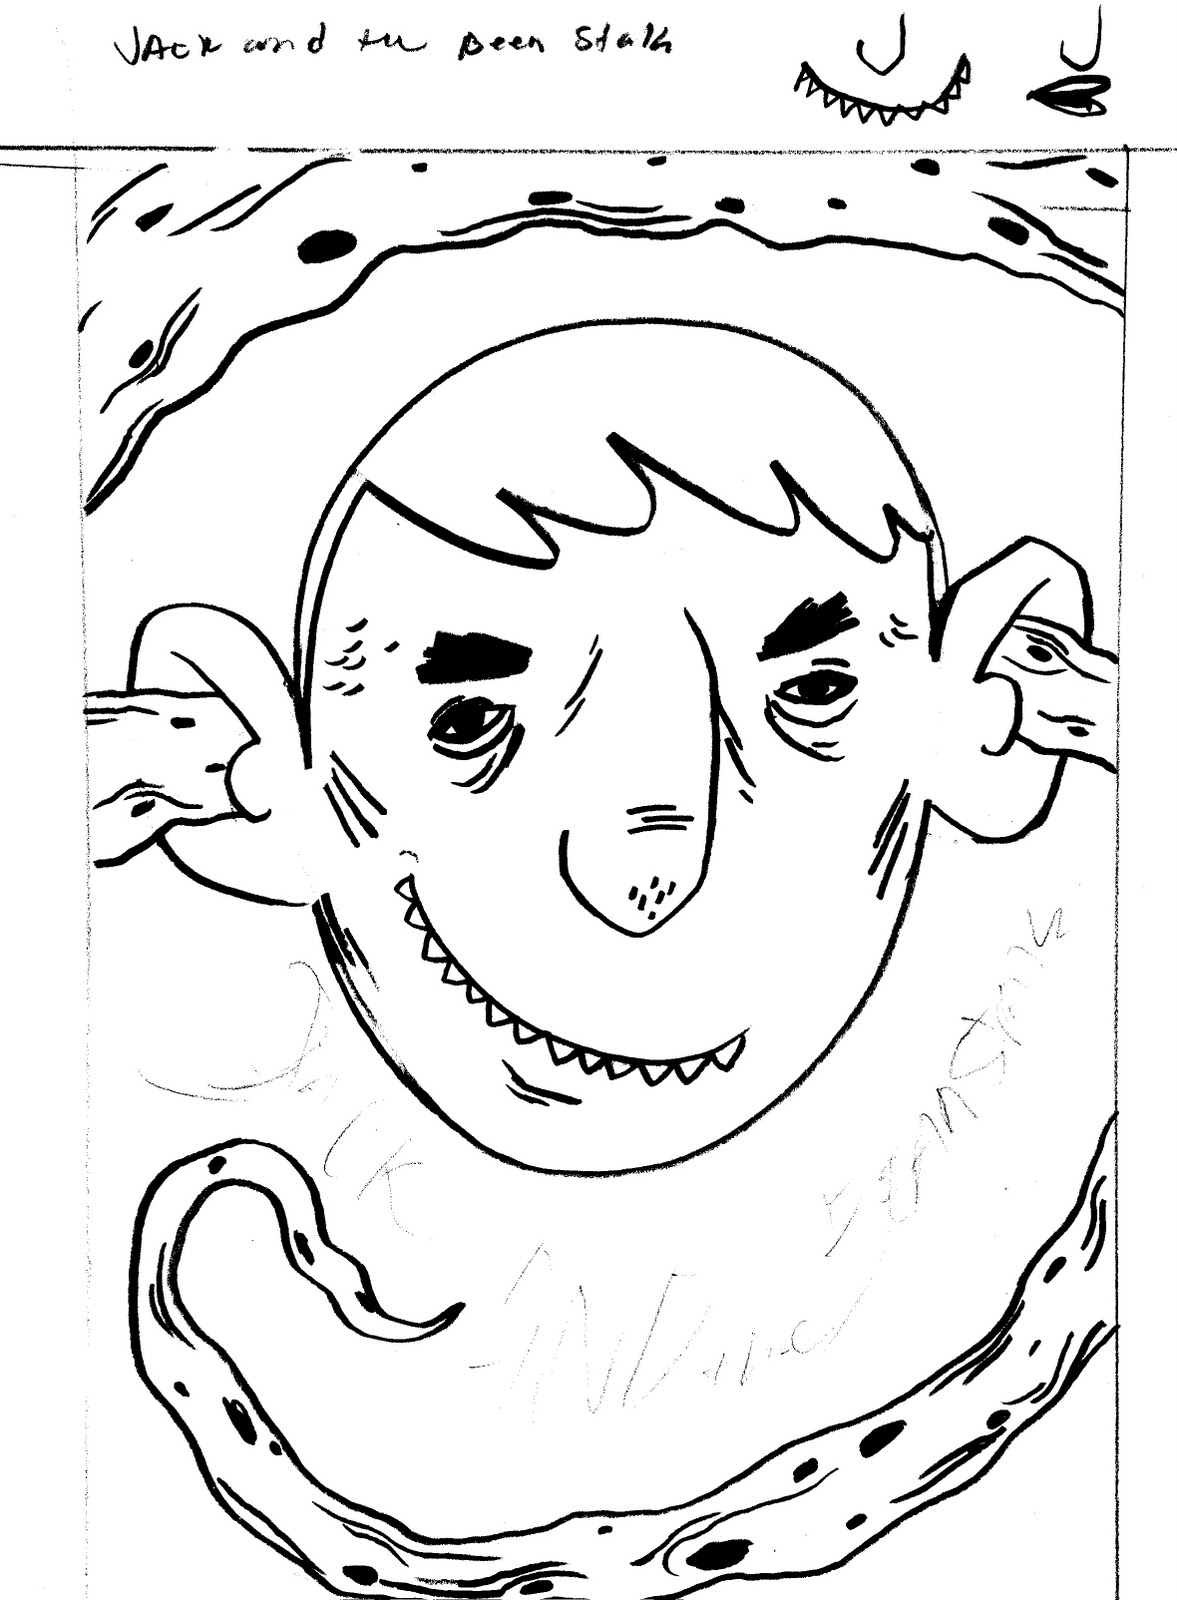 Free coloring pages for jack and the beanstalk - Free Colouring Pages Jack And The Beanstalk Free Coloring Pages Of Jack And The Bean